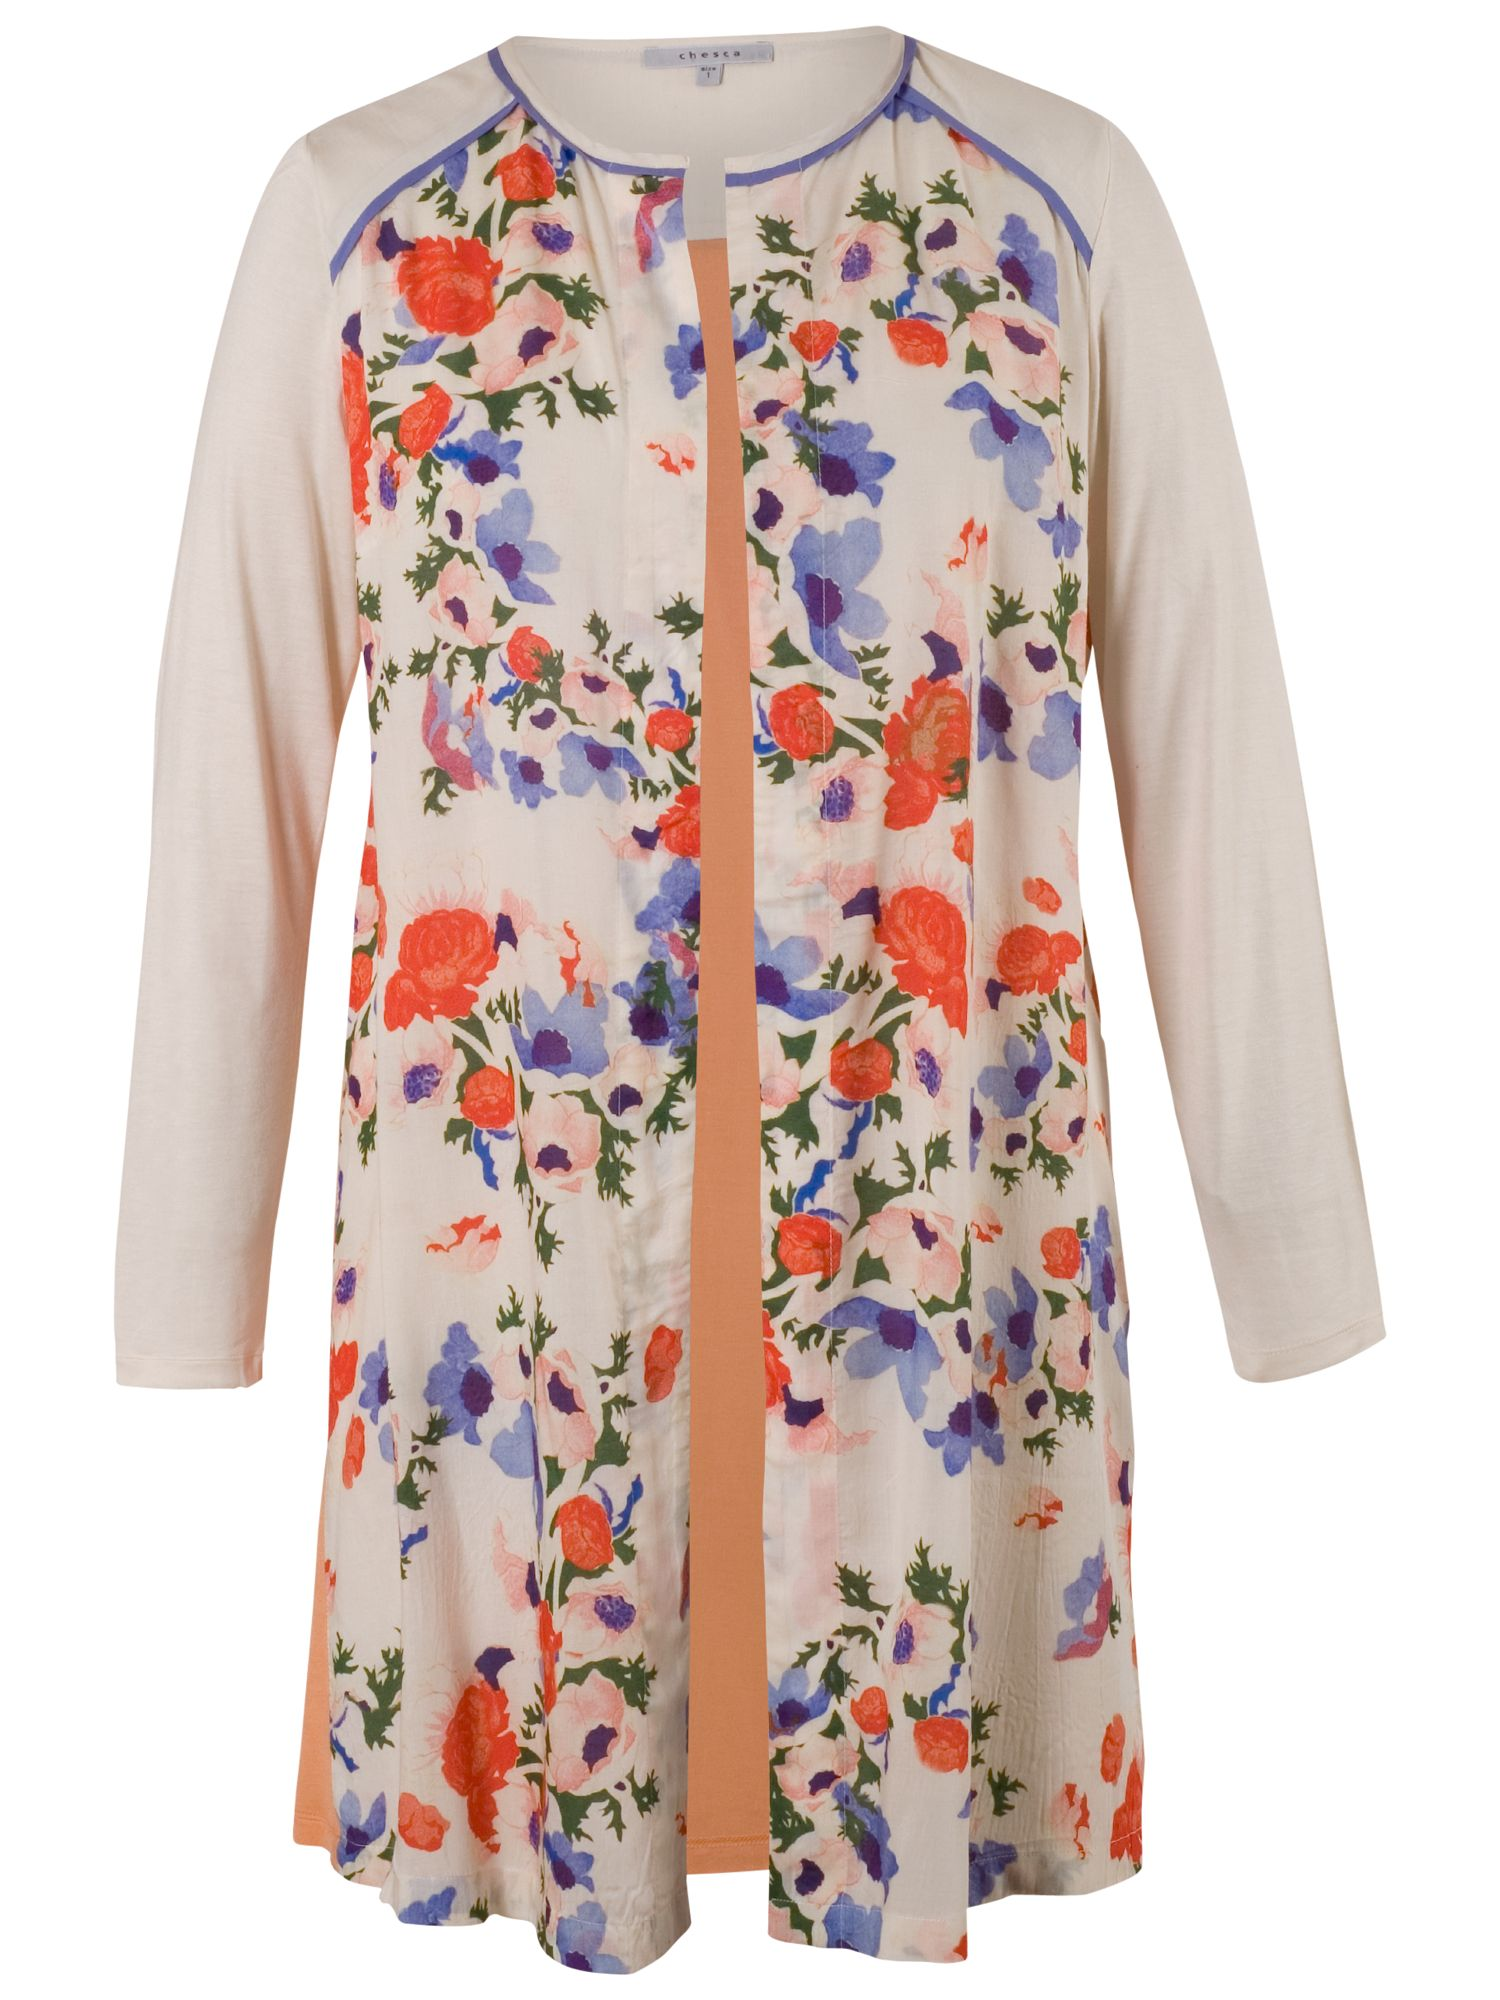 Chesca Chesca Floral Jacket, Cream